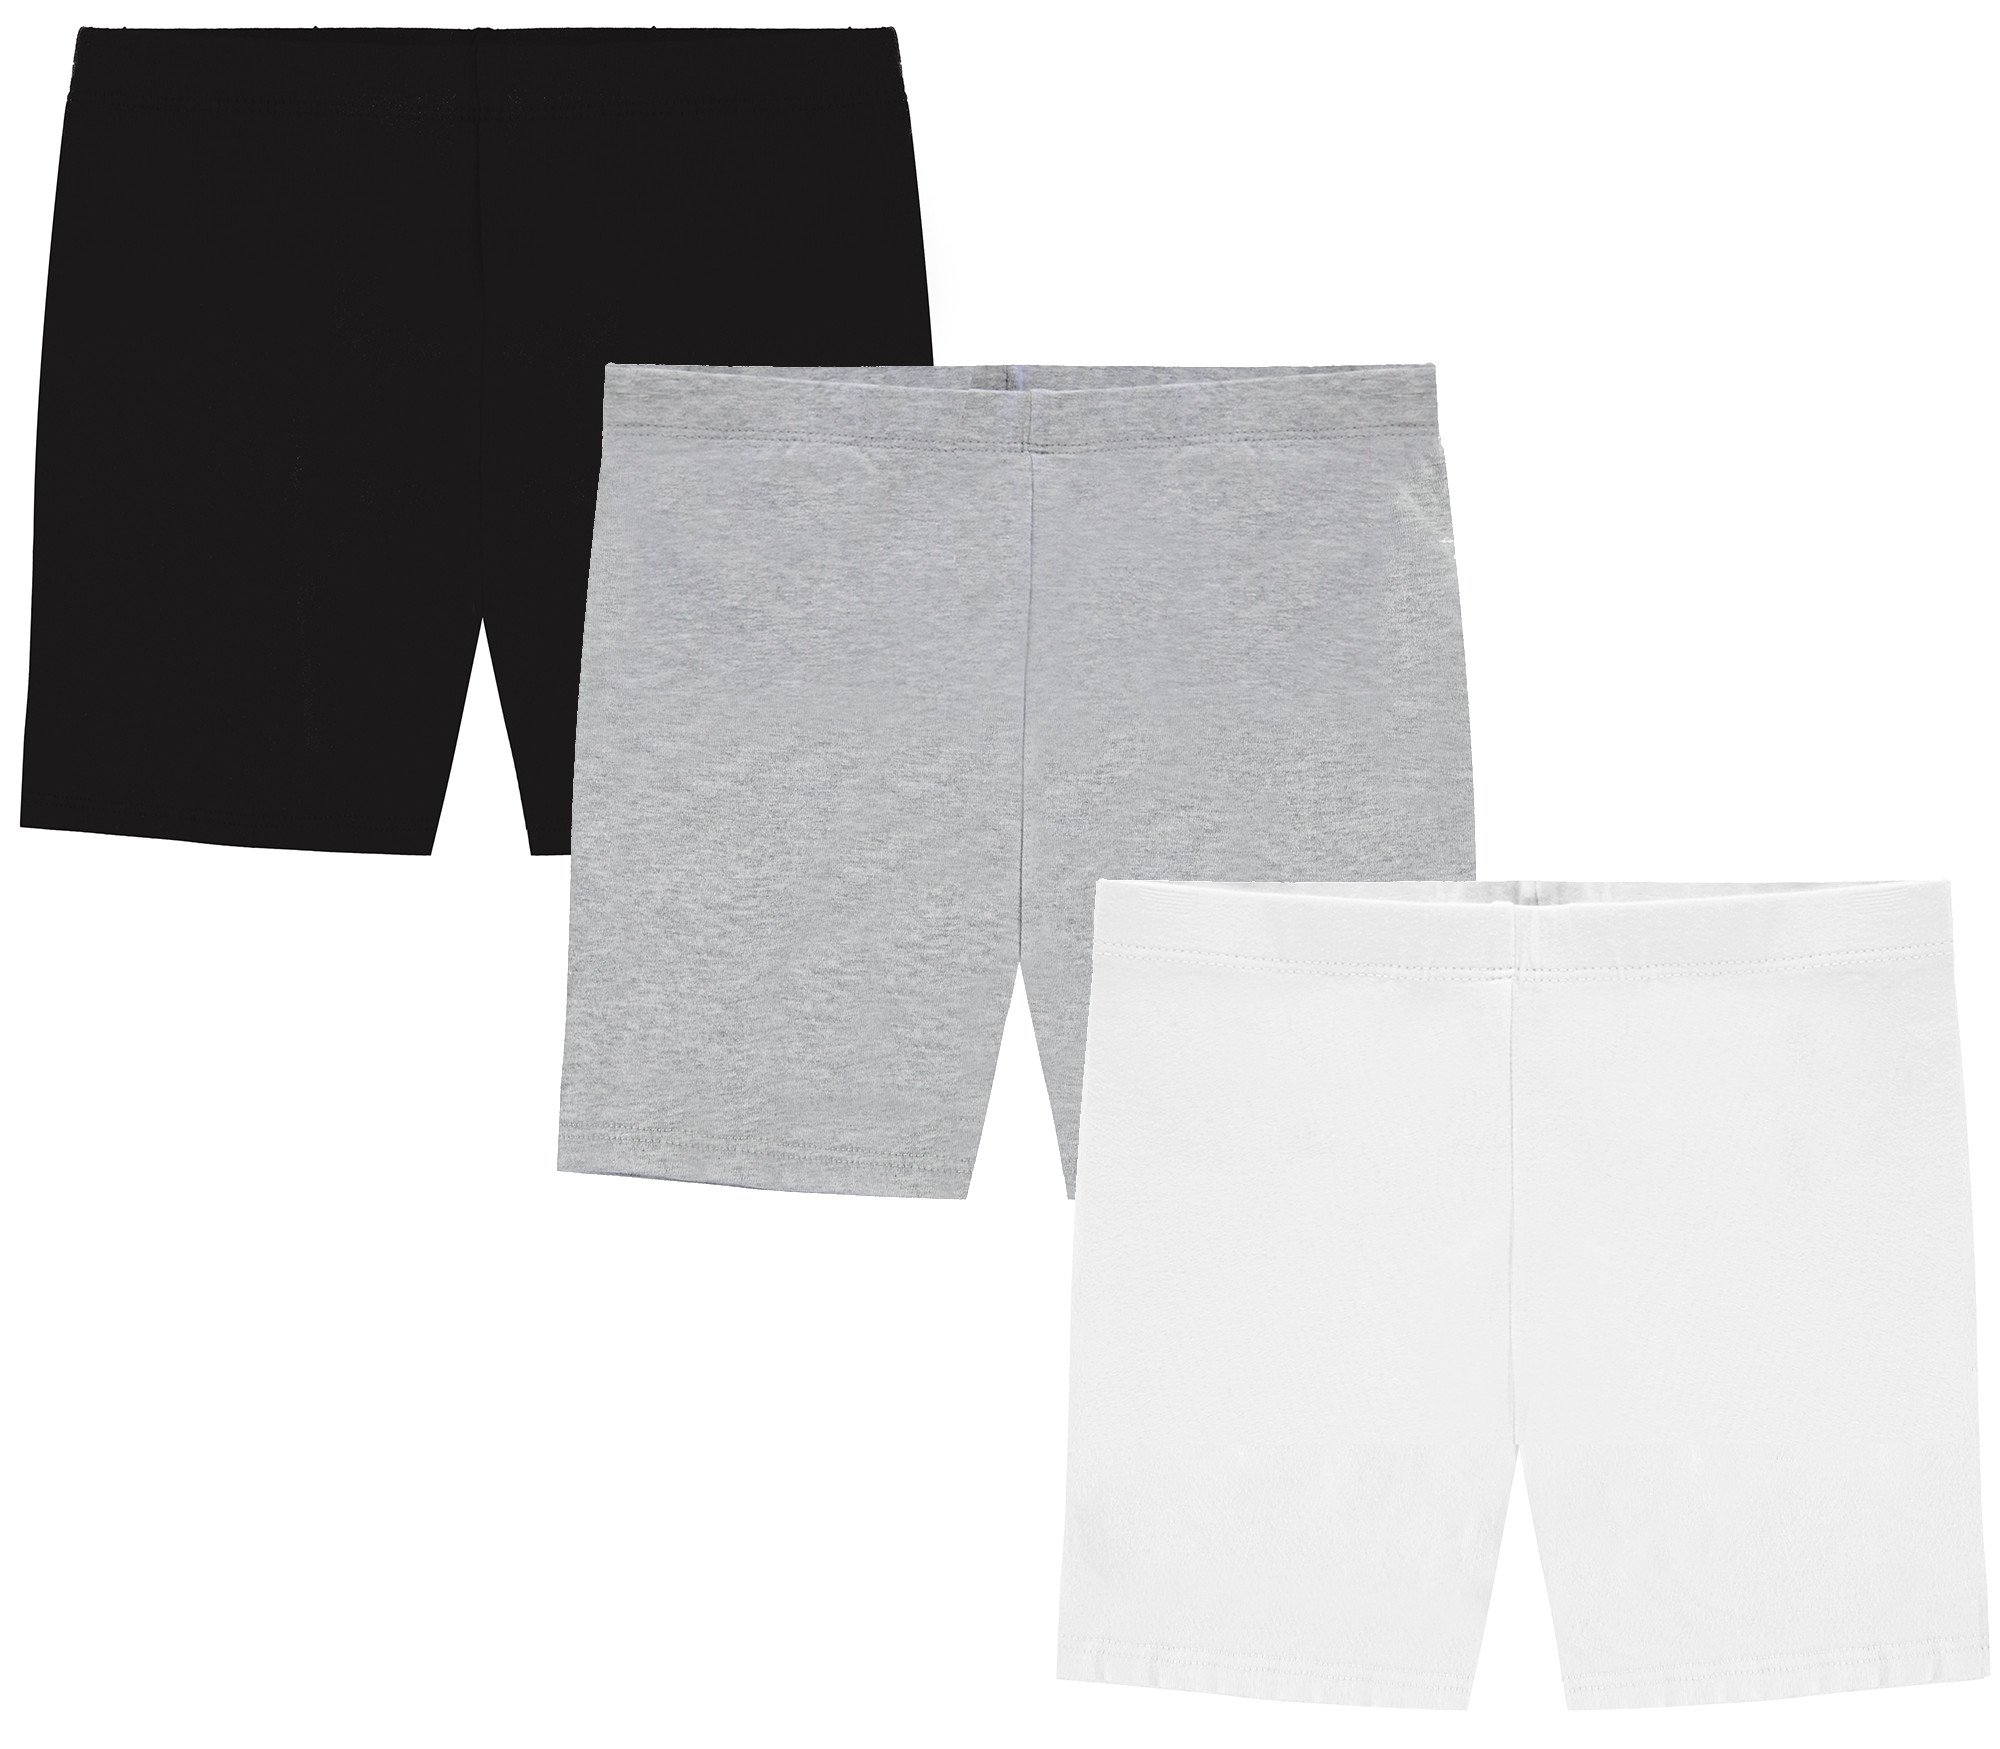 My Way Girls' Value Pack Solid Cotton Bike Shorts - Black, Heather Grey, and White - 6